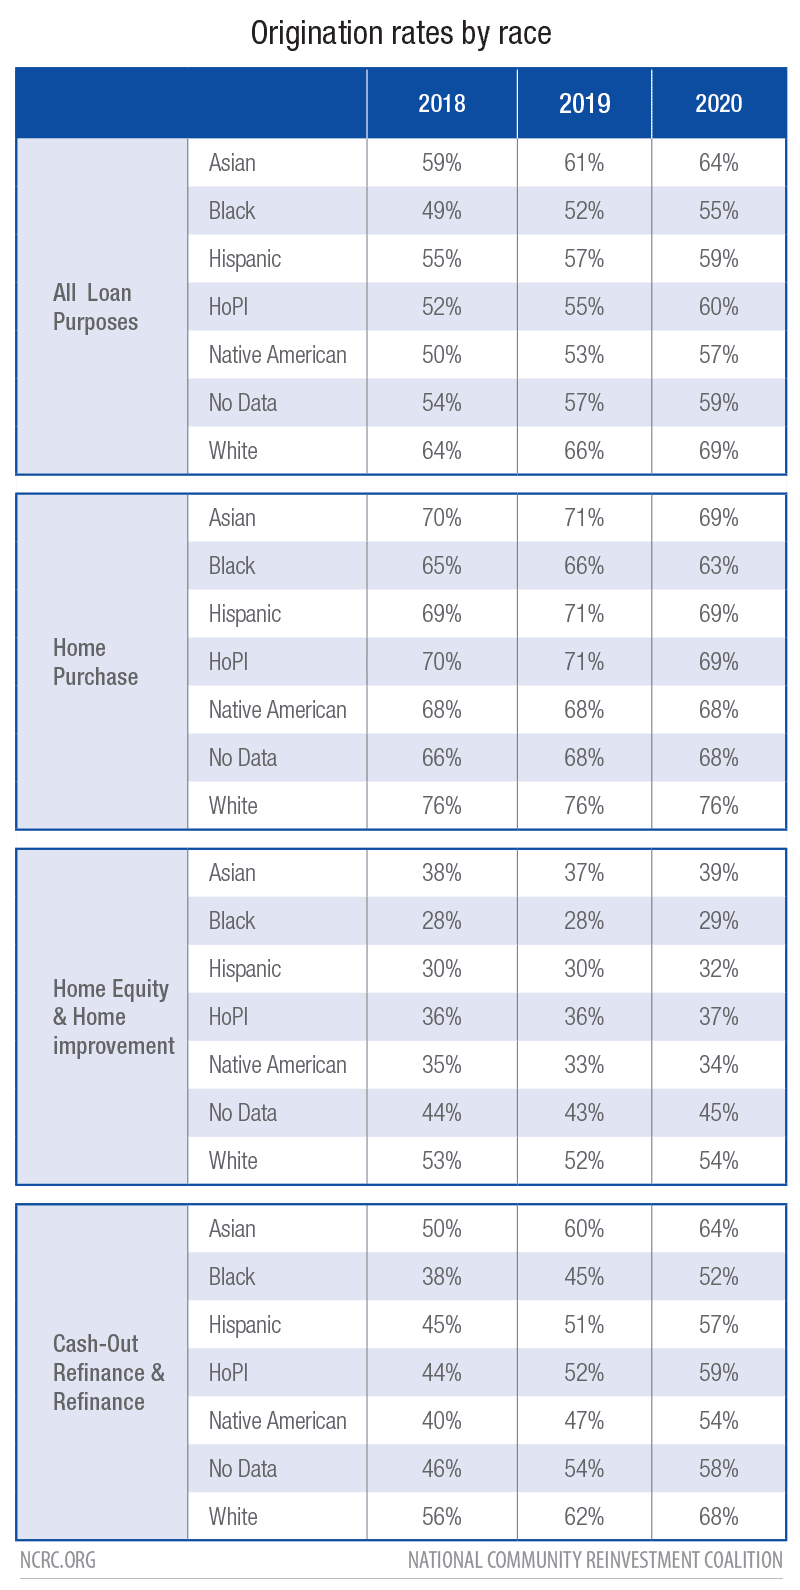 Origination Rates by Race